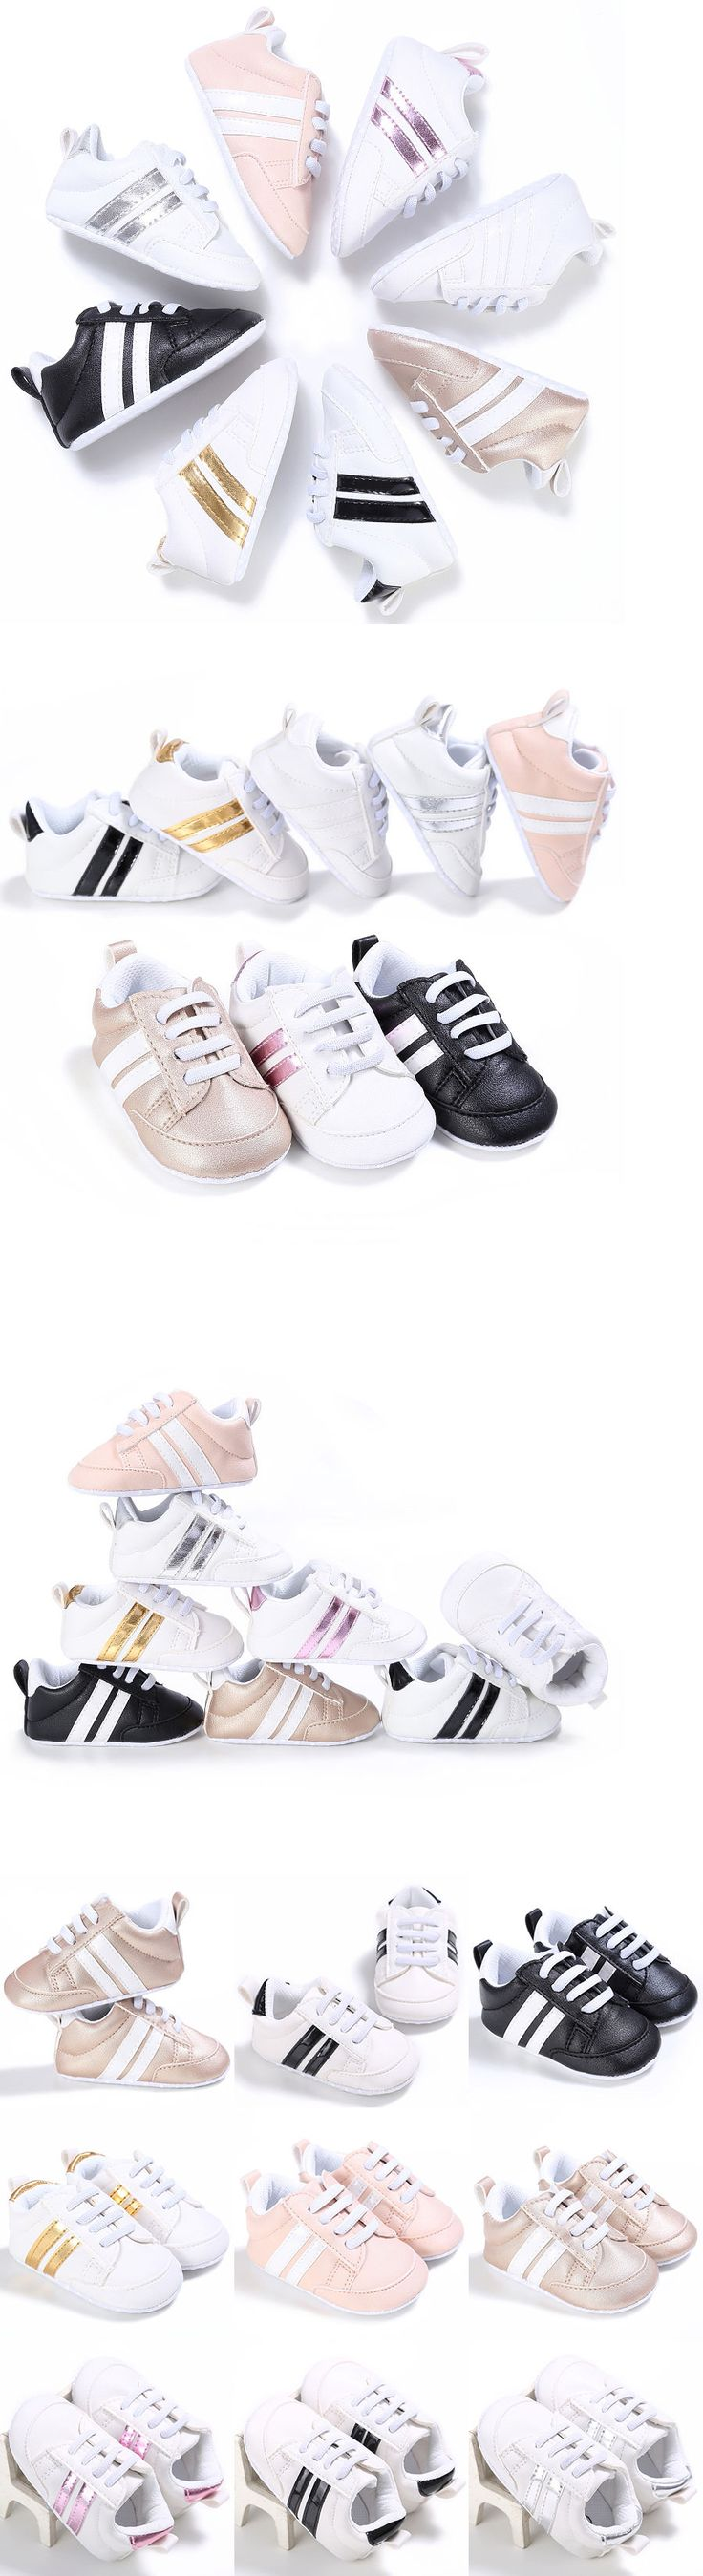 Used crib for sale ebay - Baby Boy Shoes Kid Sneakers Newborn Baby Crib Shoes Boy Girls Infant Toddler Soft Sole